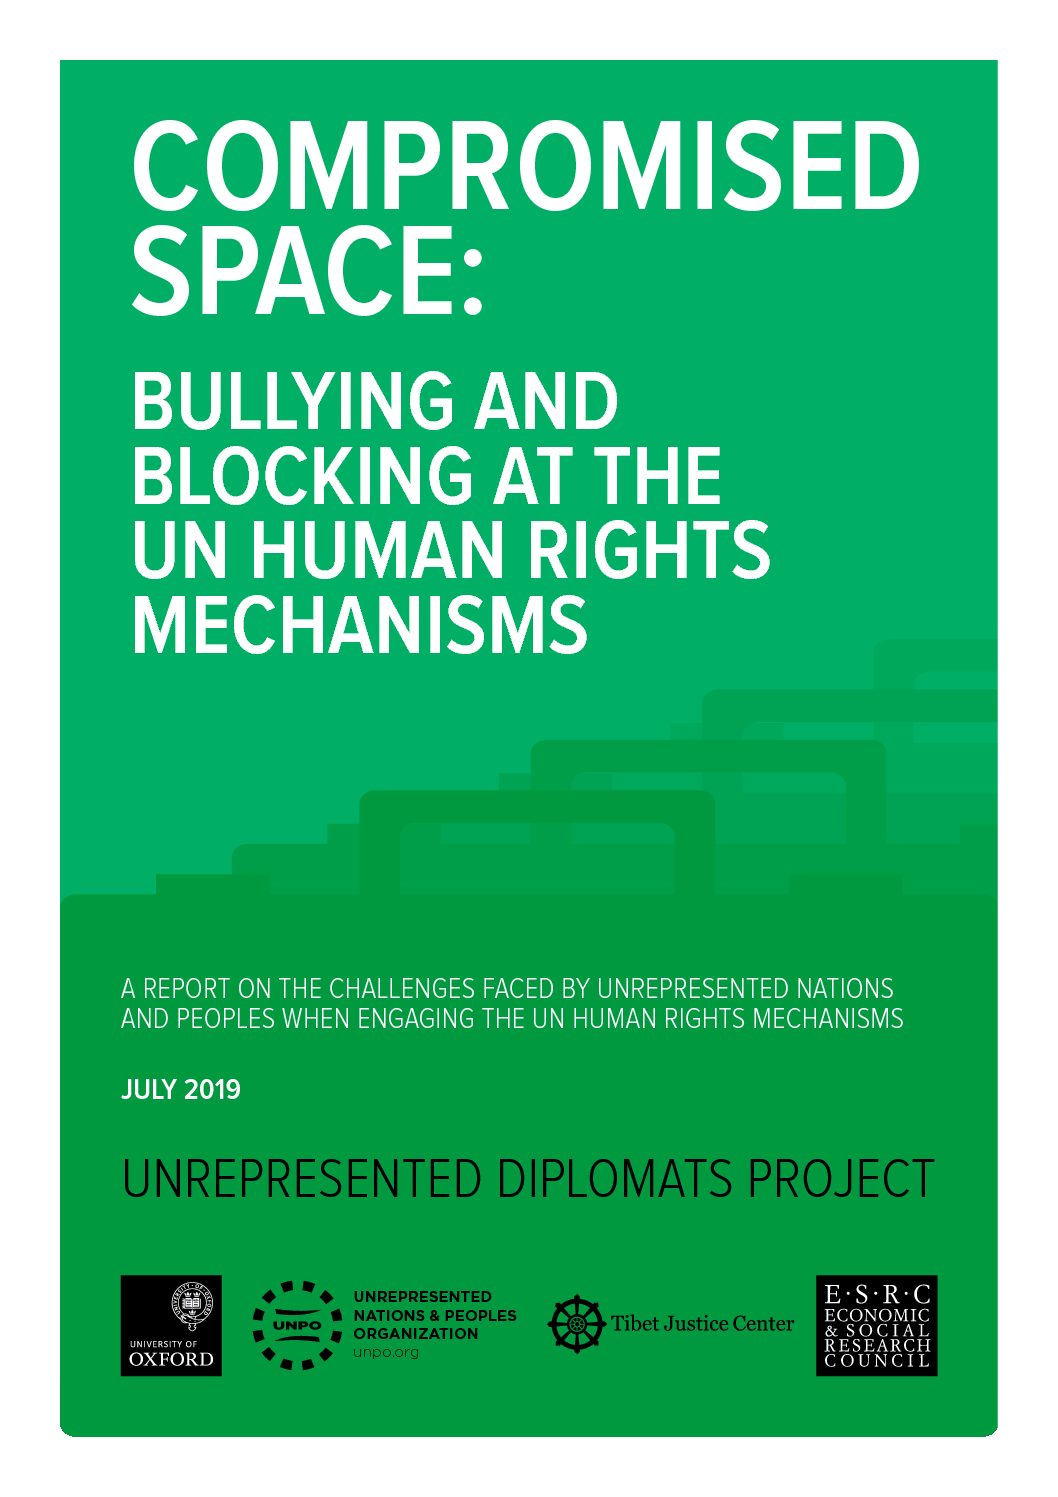 Read our new report – Compromised Space for Unrepresented Peoples at the United Nations